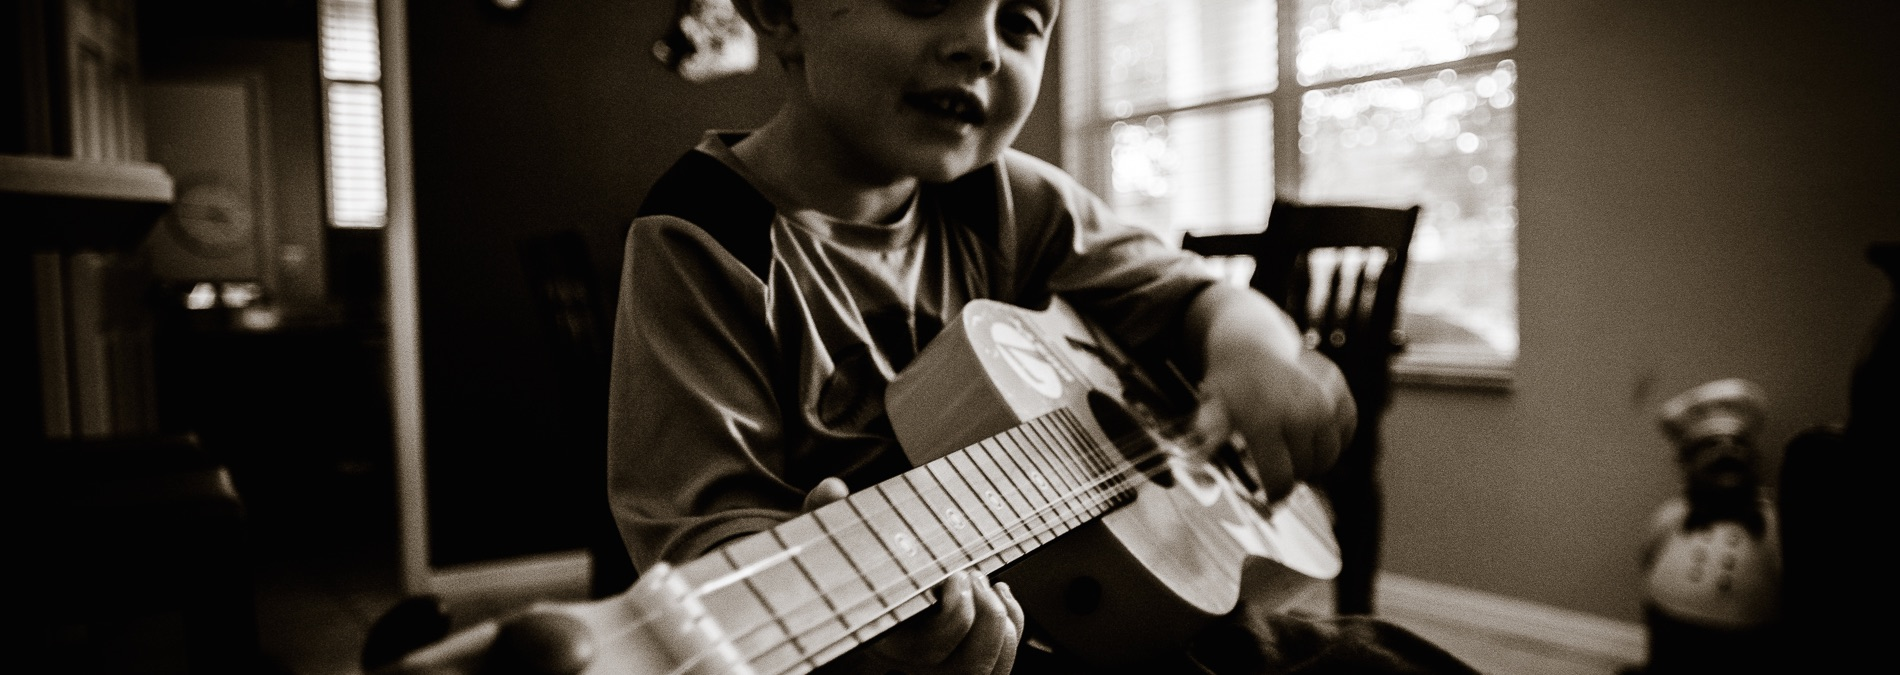 Our Little Musician – Candid Portraits